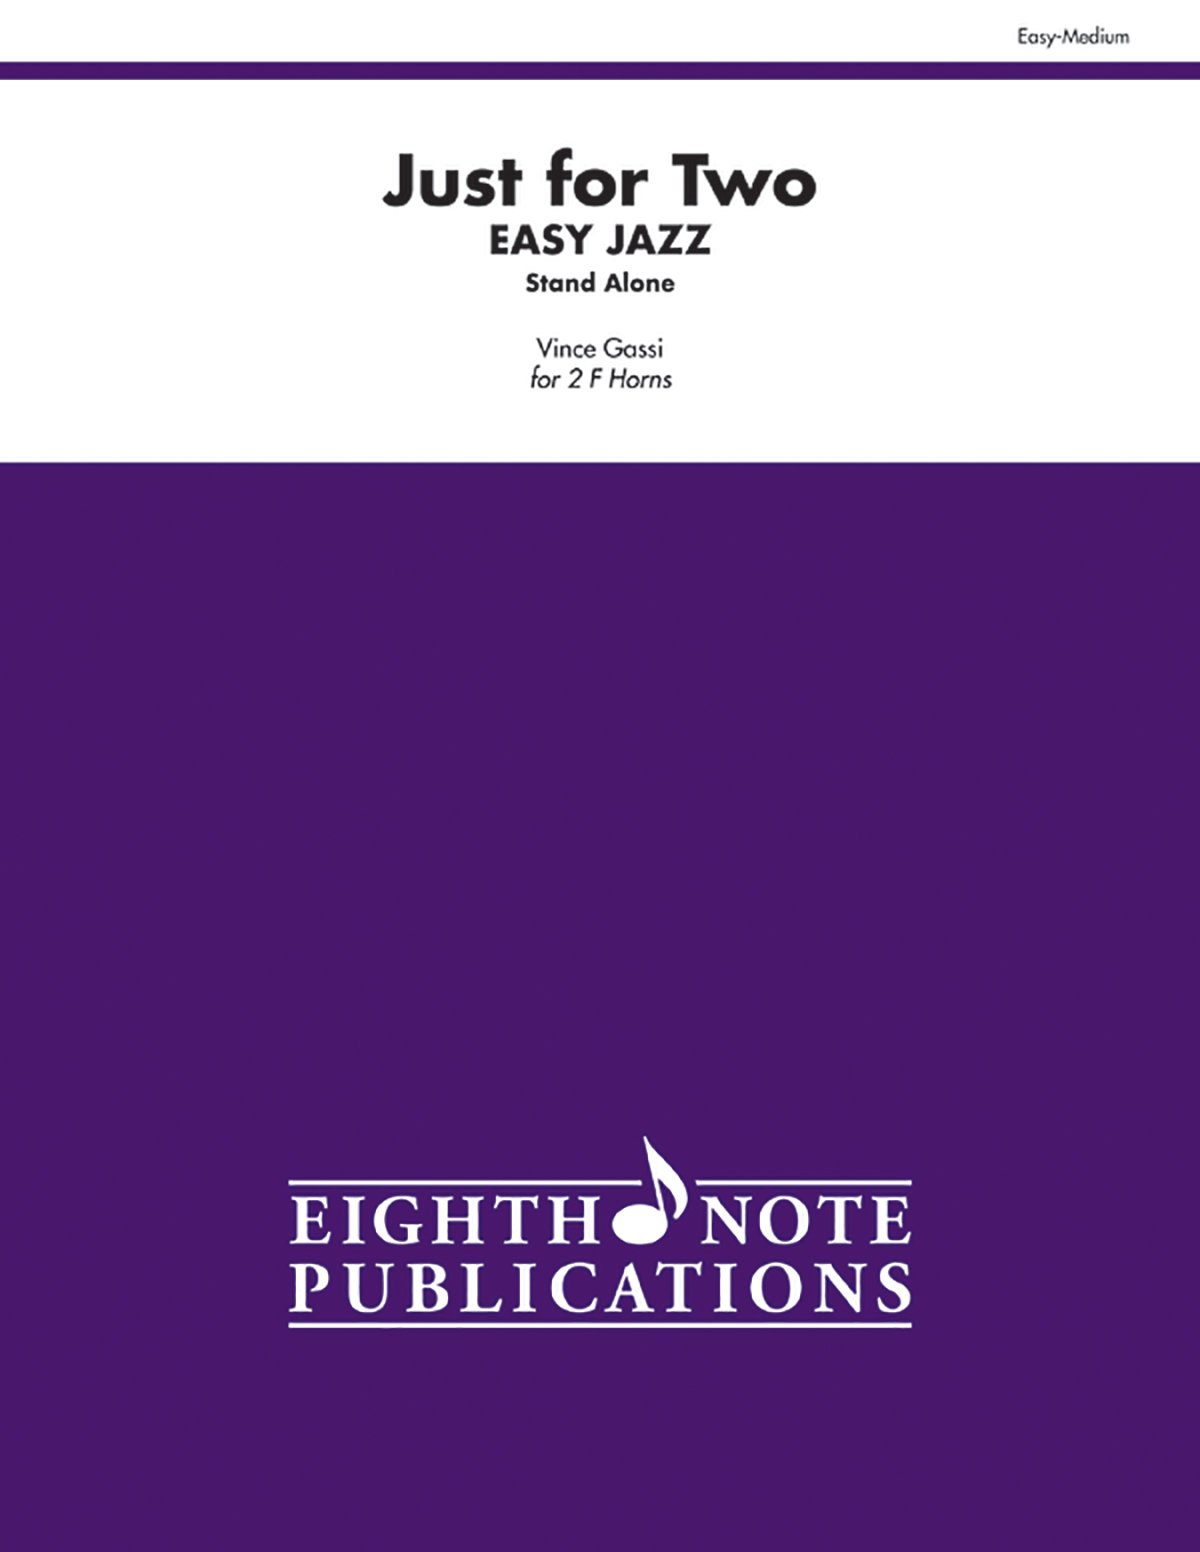 Download Just for Two Easy Jazz: 2 F Horns (Eighth Note Publications) pdf epub